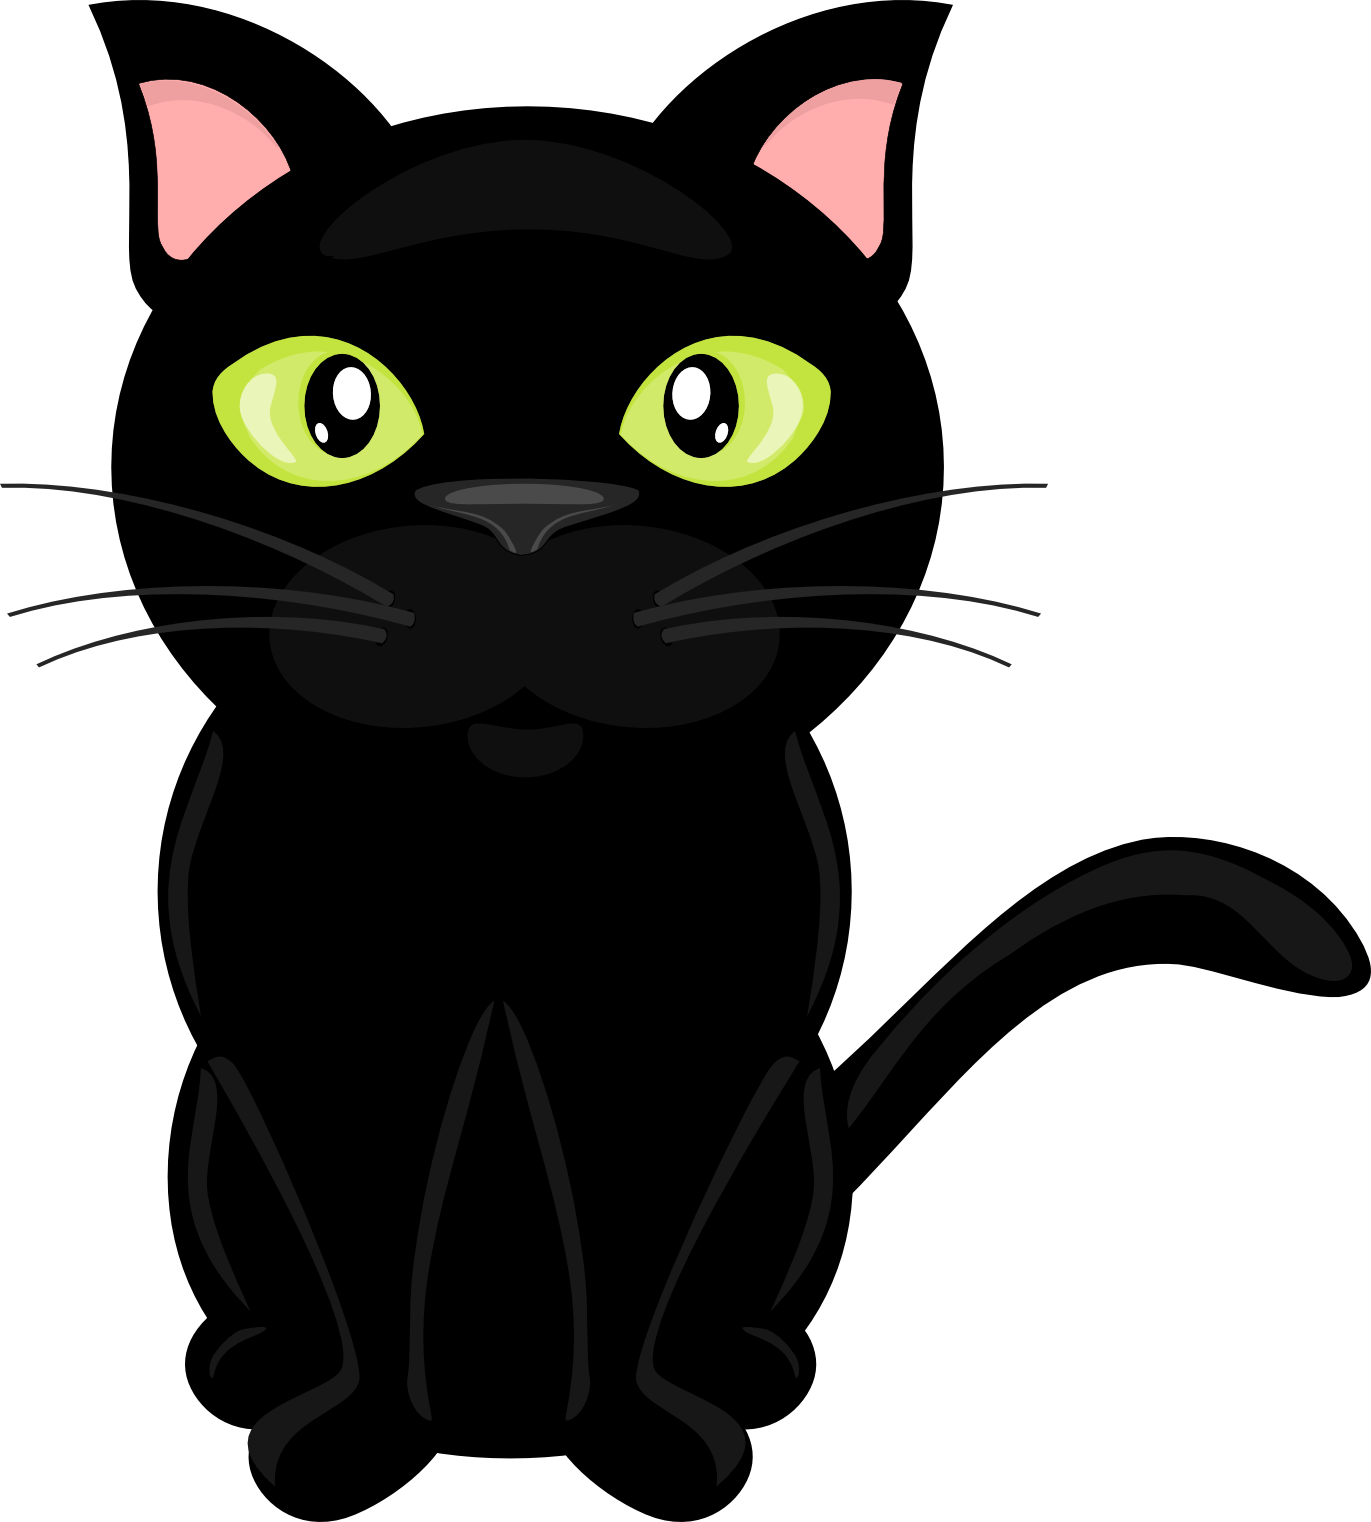 Black Cat Pictures Cartoon | Free download on ClipArtMag